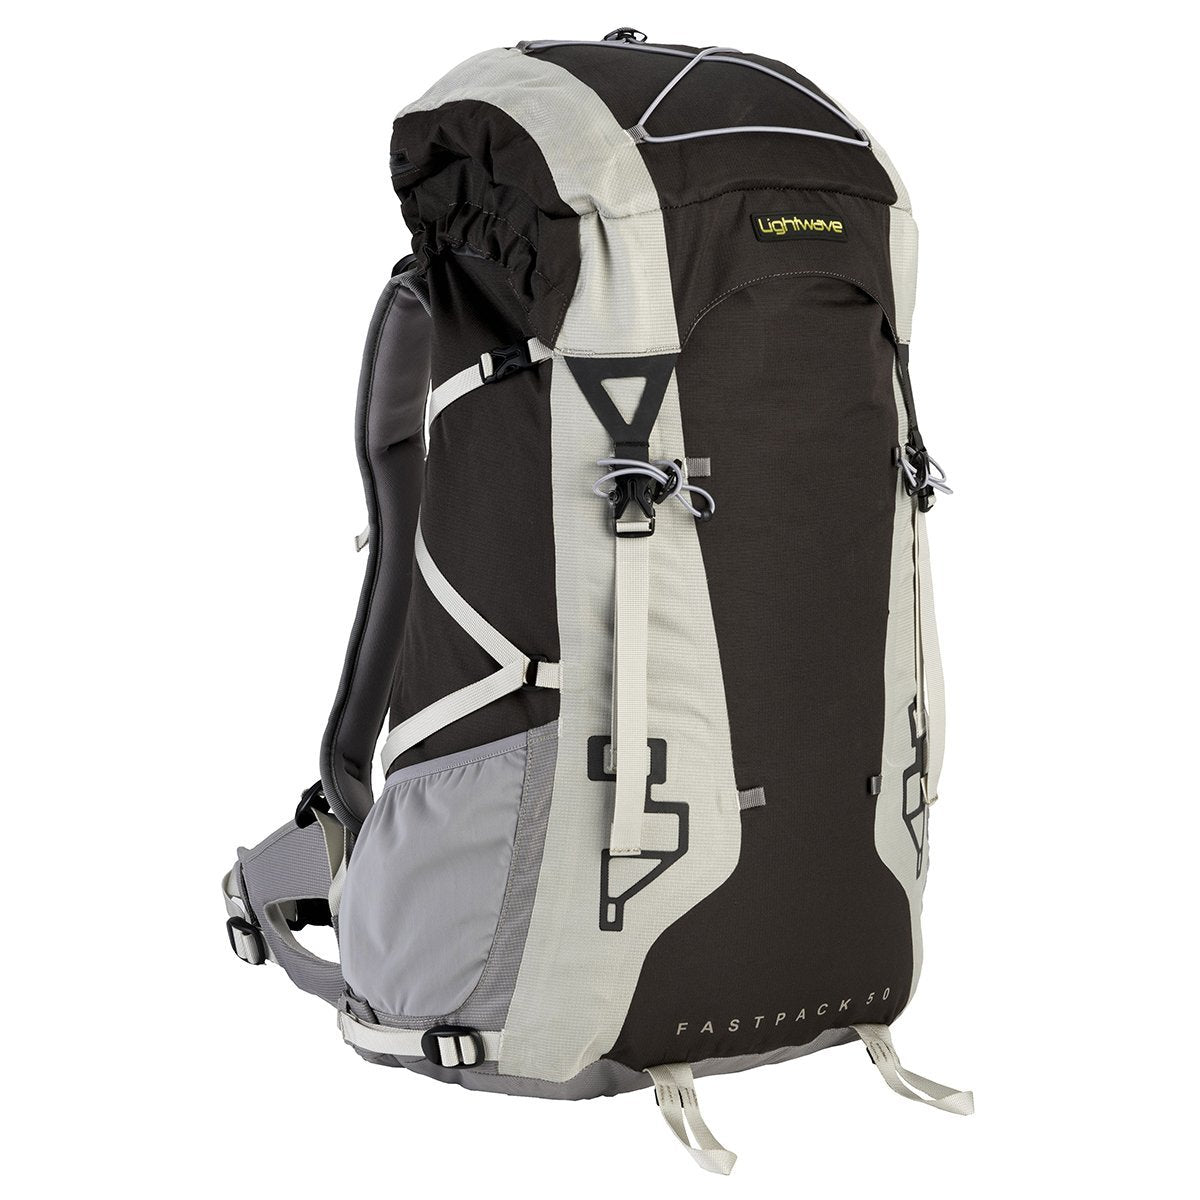 Lightwave » Fastpack 50 Rucksack - Ultra-lightweight Hiking Backpack